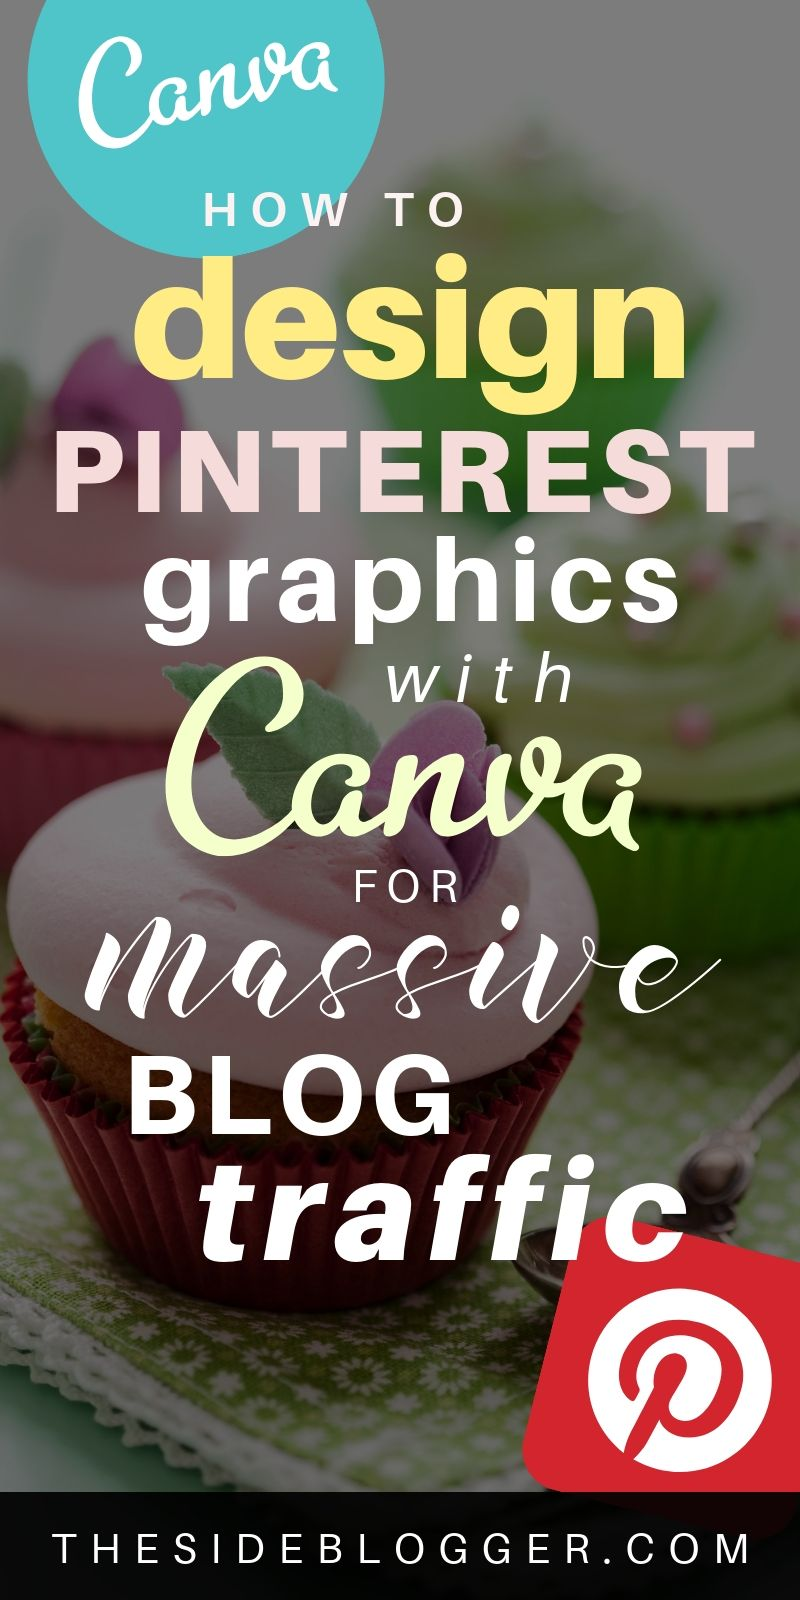 How to design Pinterest graphics with Canva that are irresistibly clickable and repinnable!